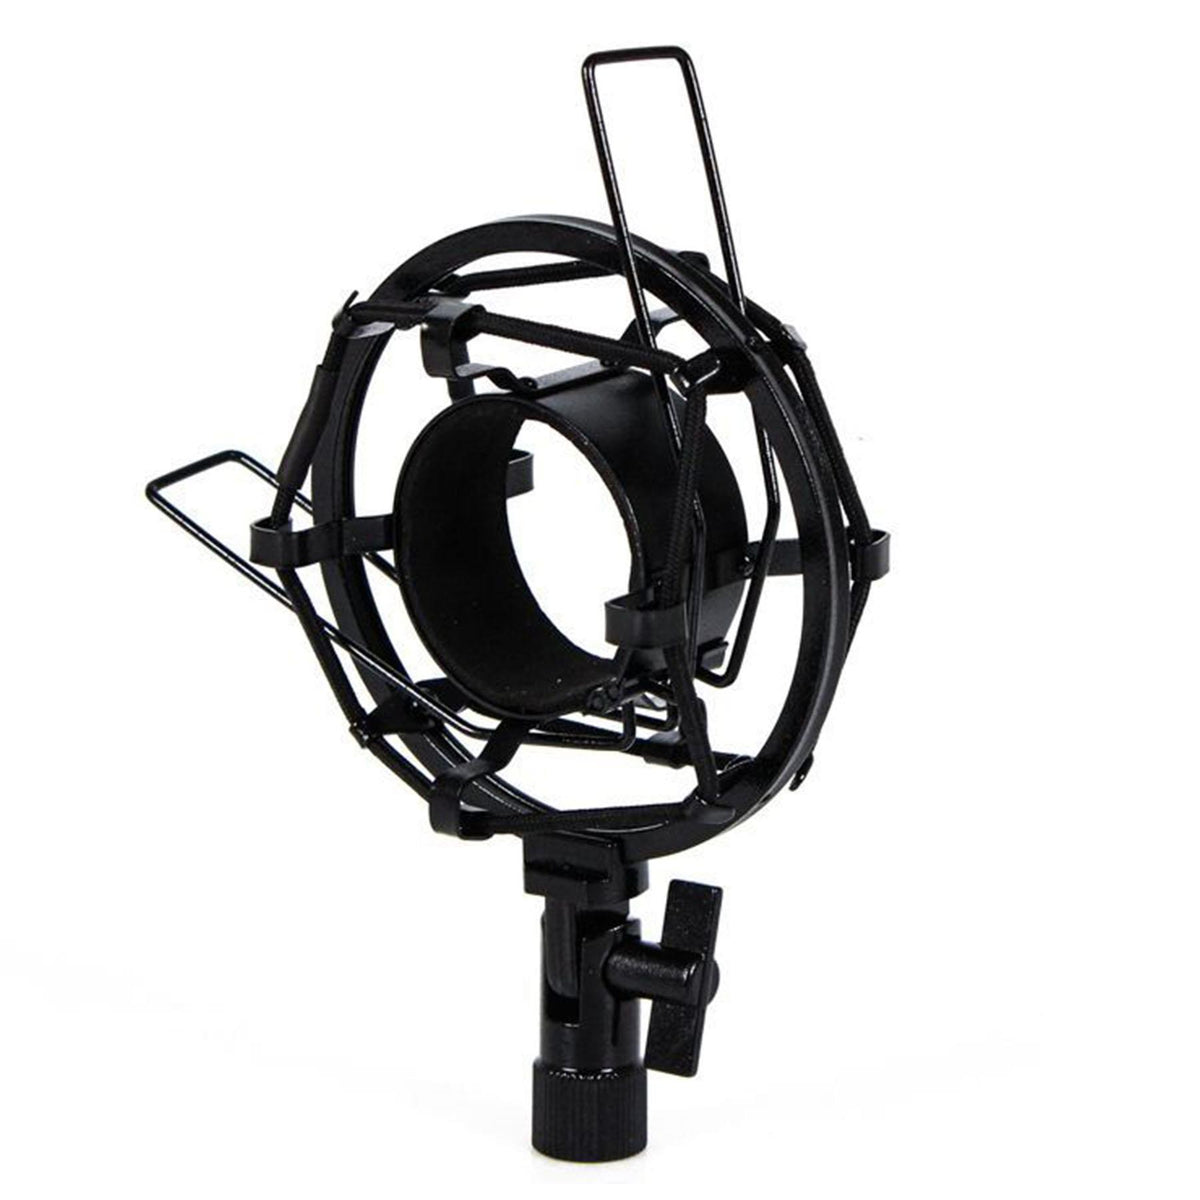 Black Shock Mount for Neumann TLM 103 Microphone